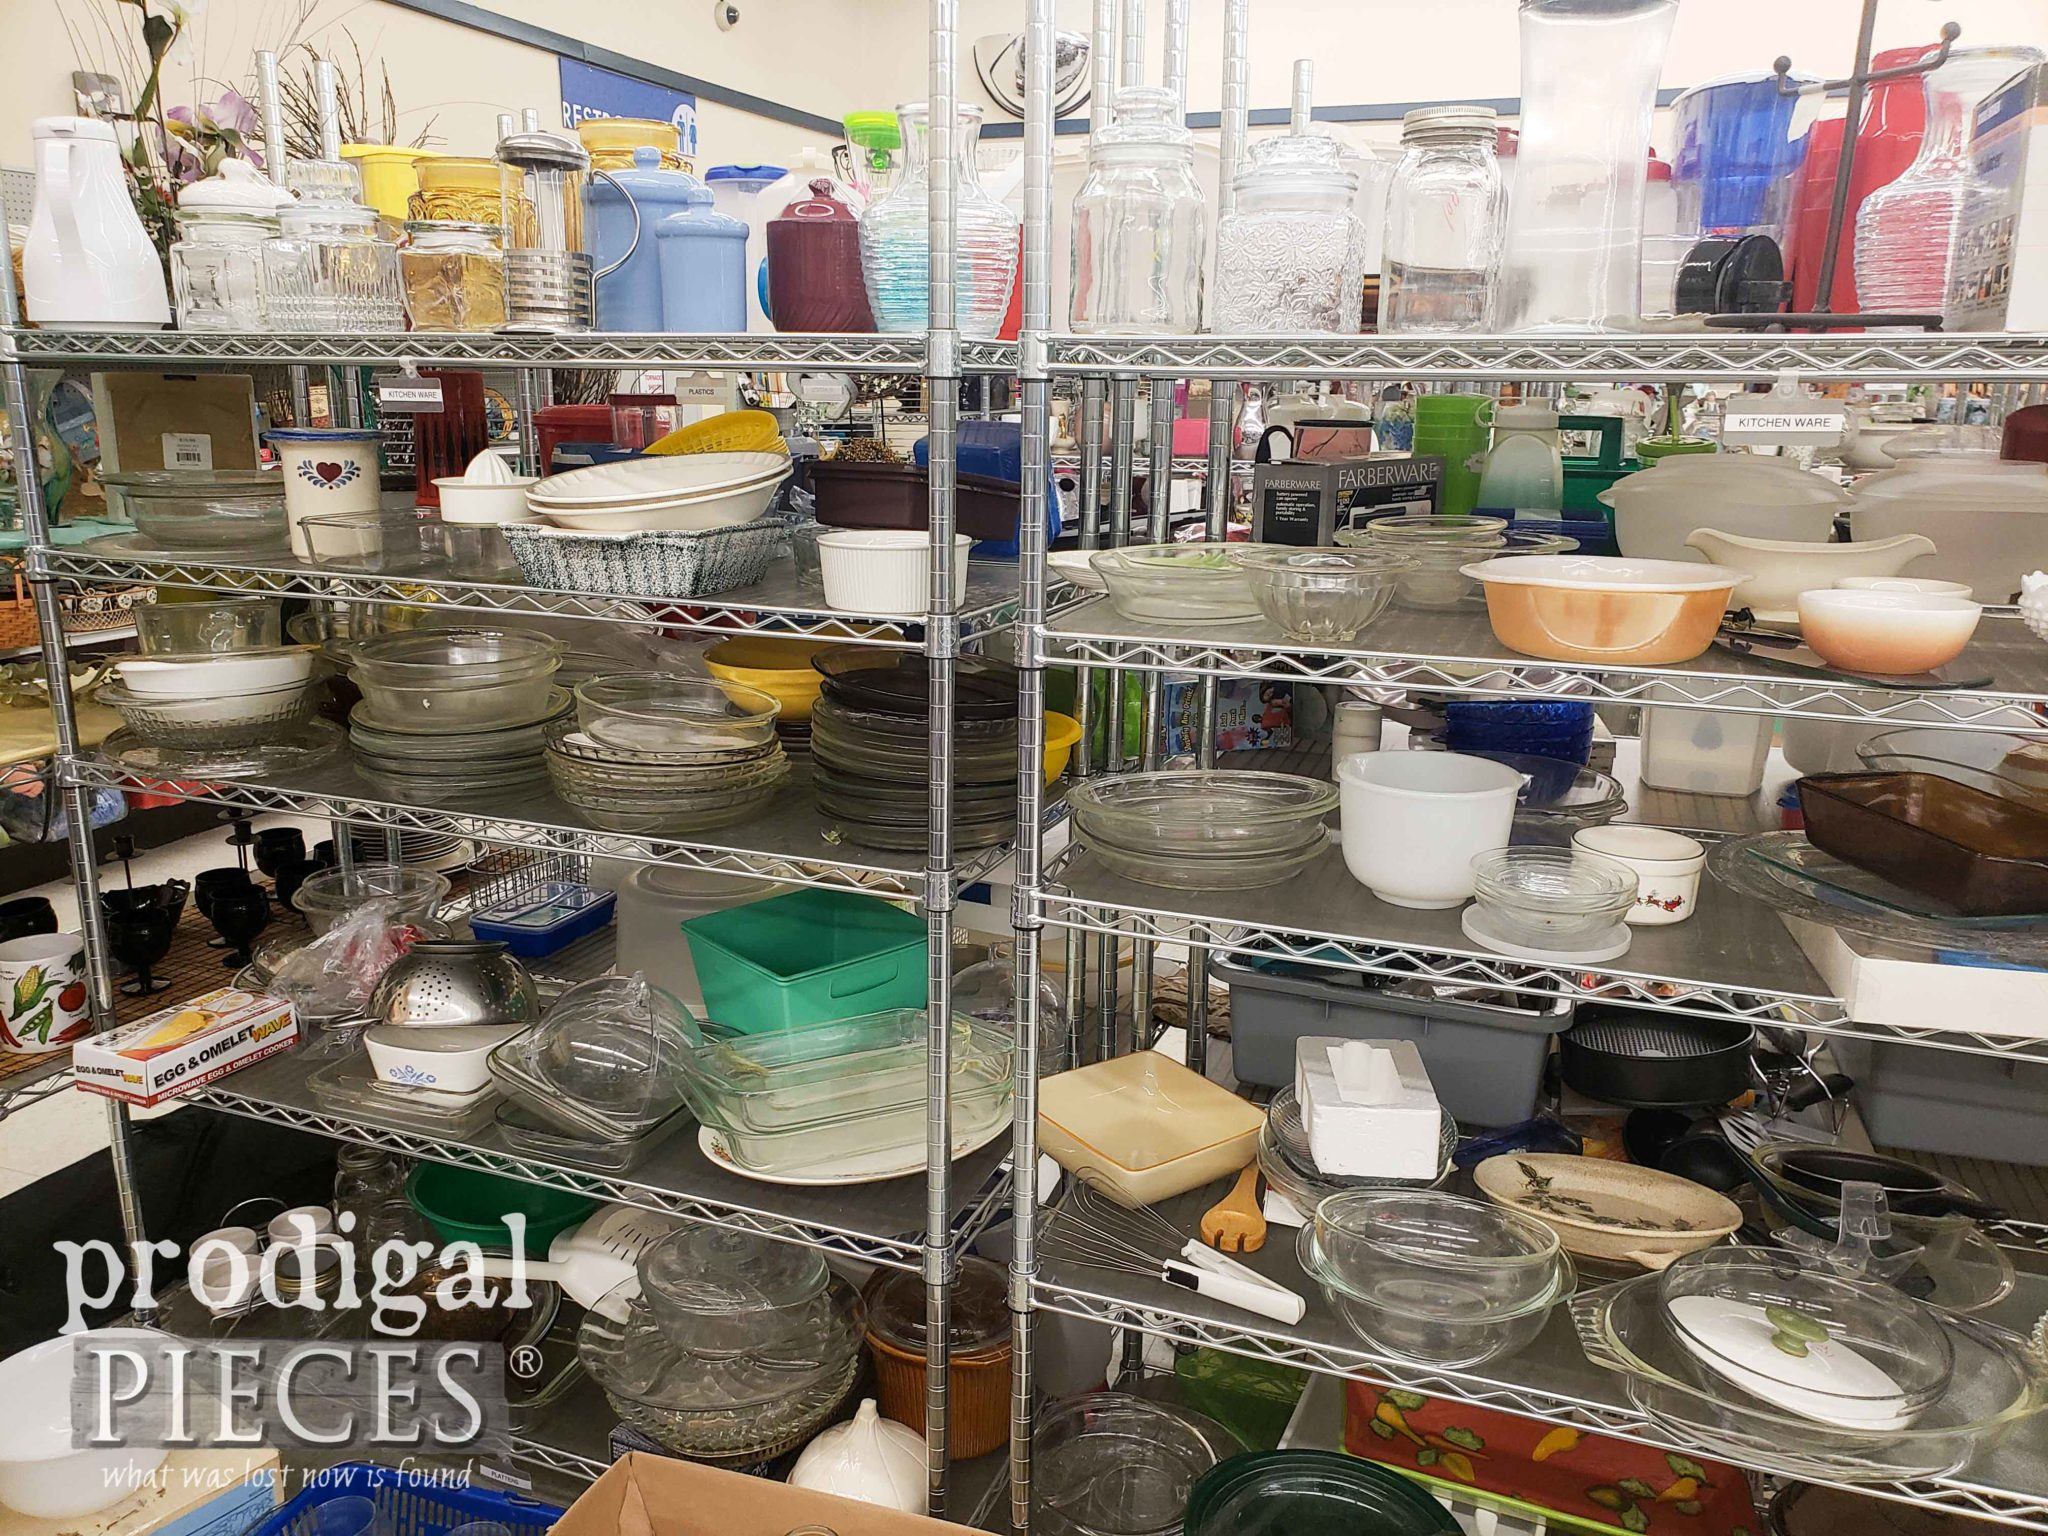 Thrift Store Glassware Section as shown by Prodigal Pieces | prodigalpieces.com